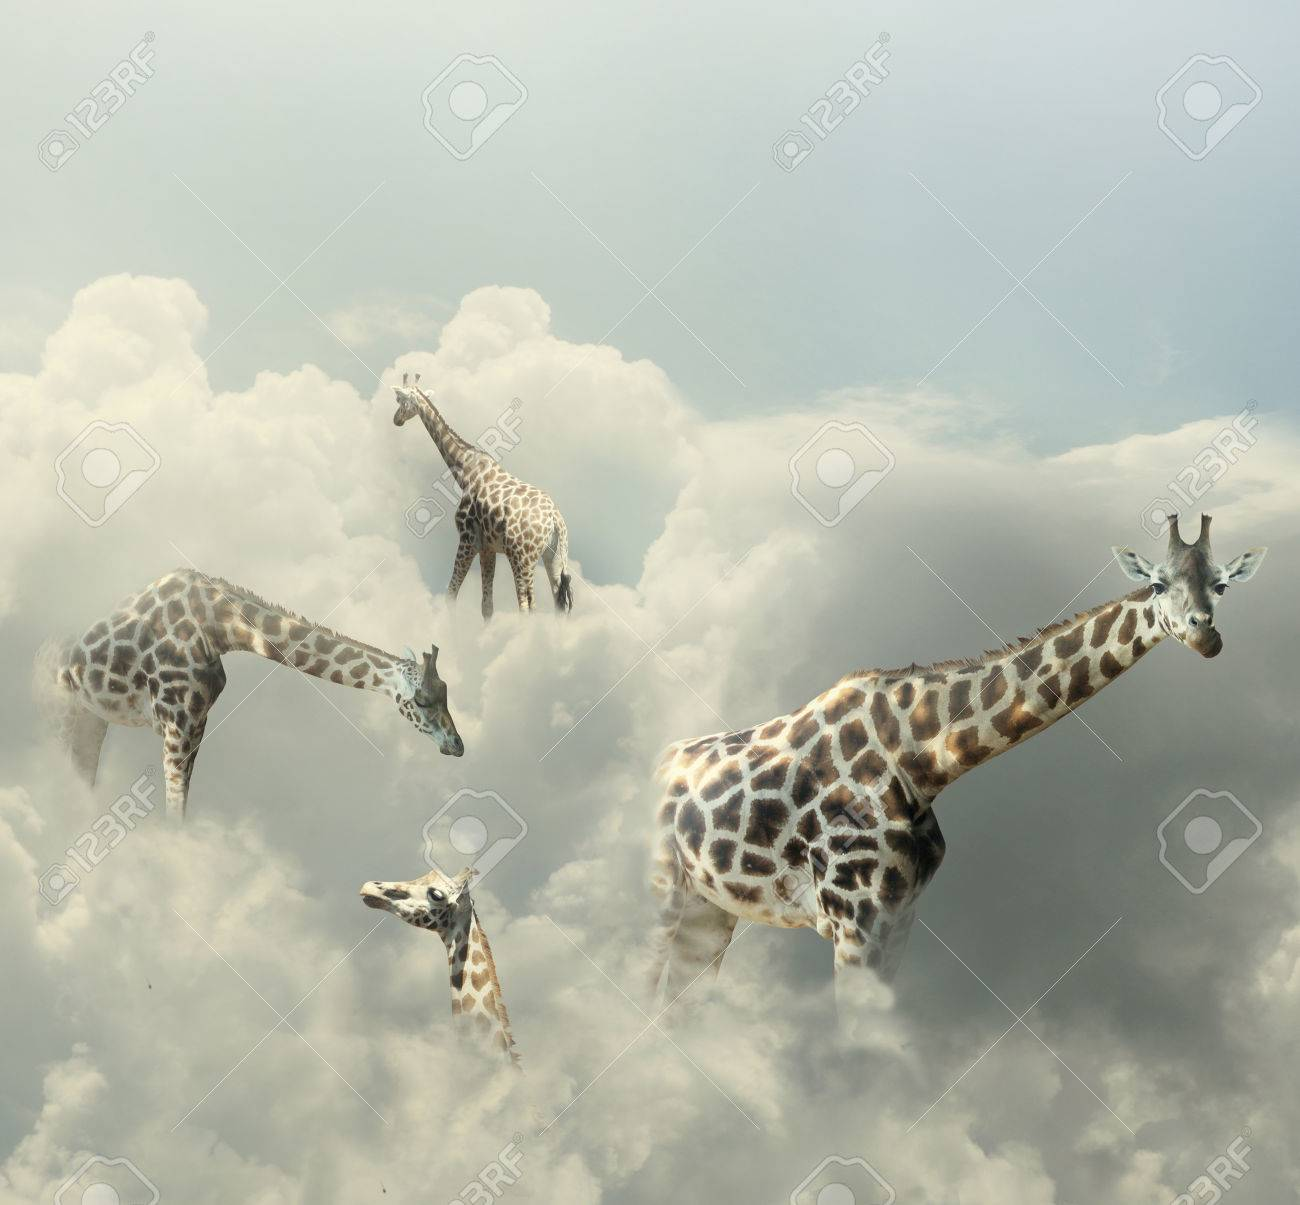 Surreal image representing four giraffe walking in the clouds - 29308047